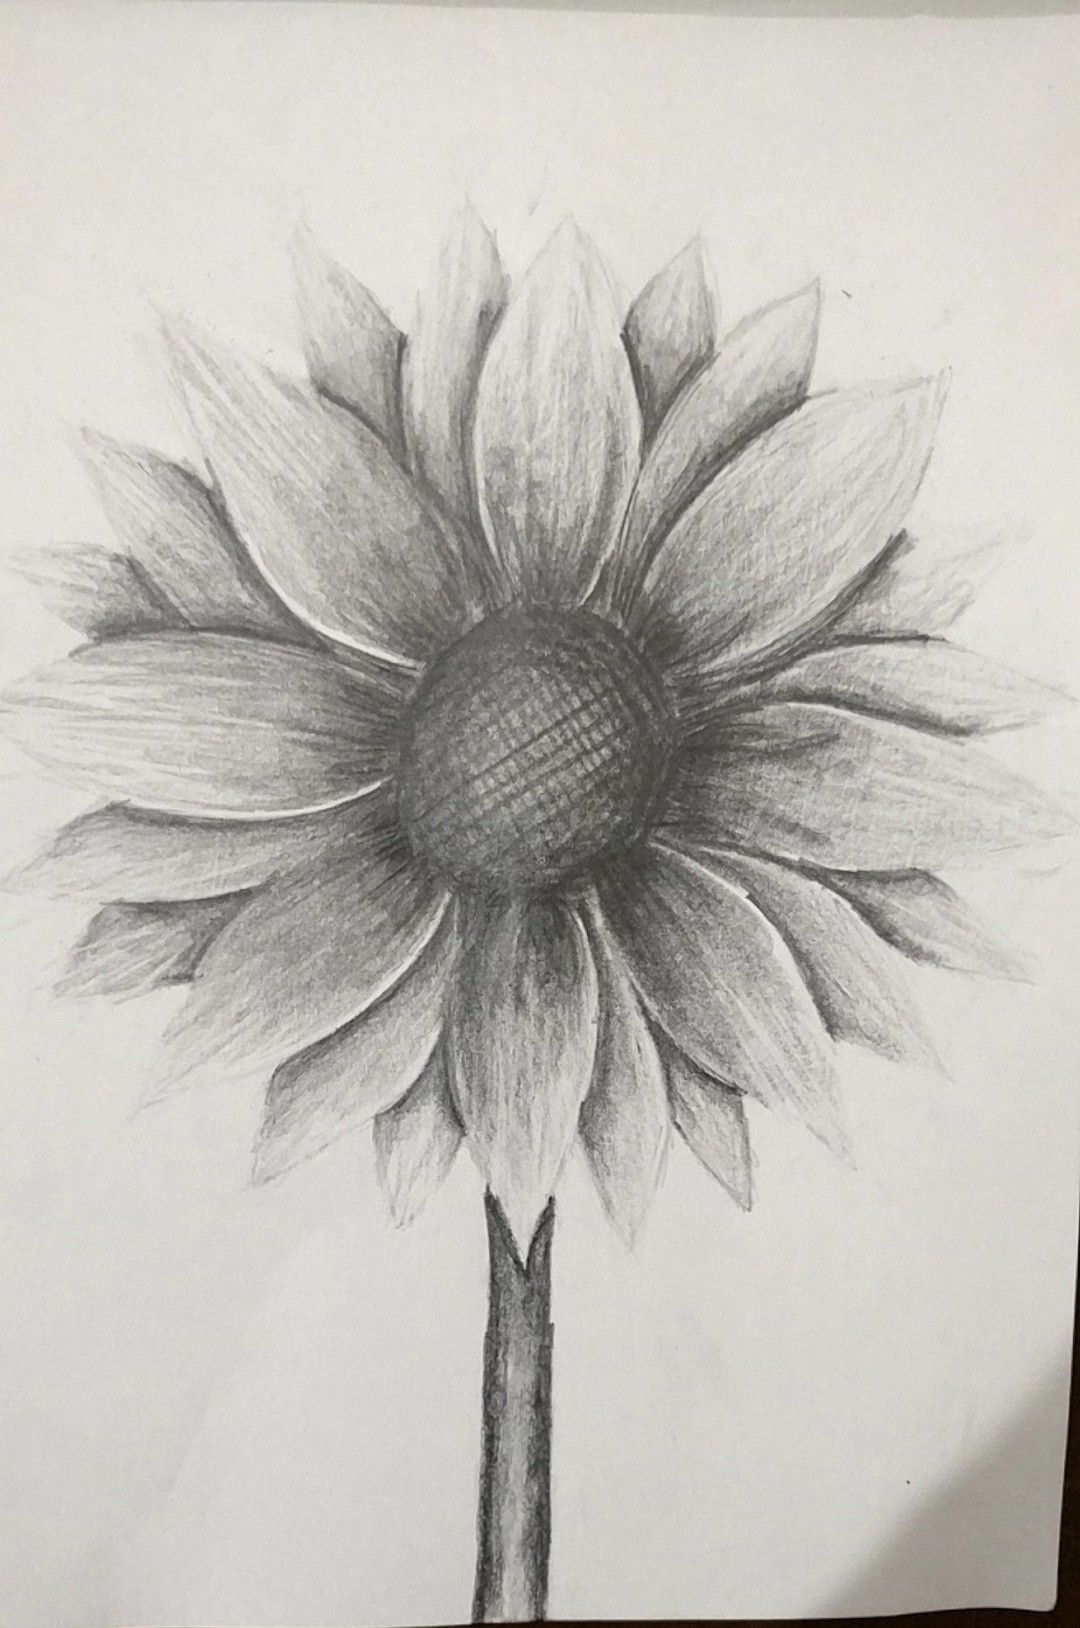 Sunflower in pencil sunflower sketches pencil shading